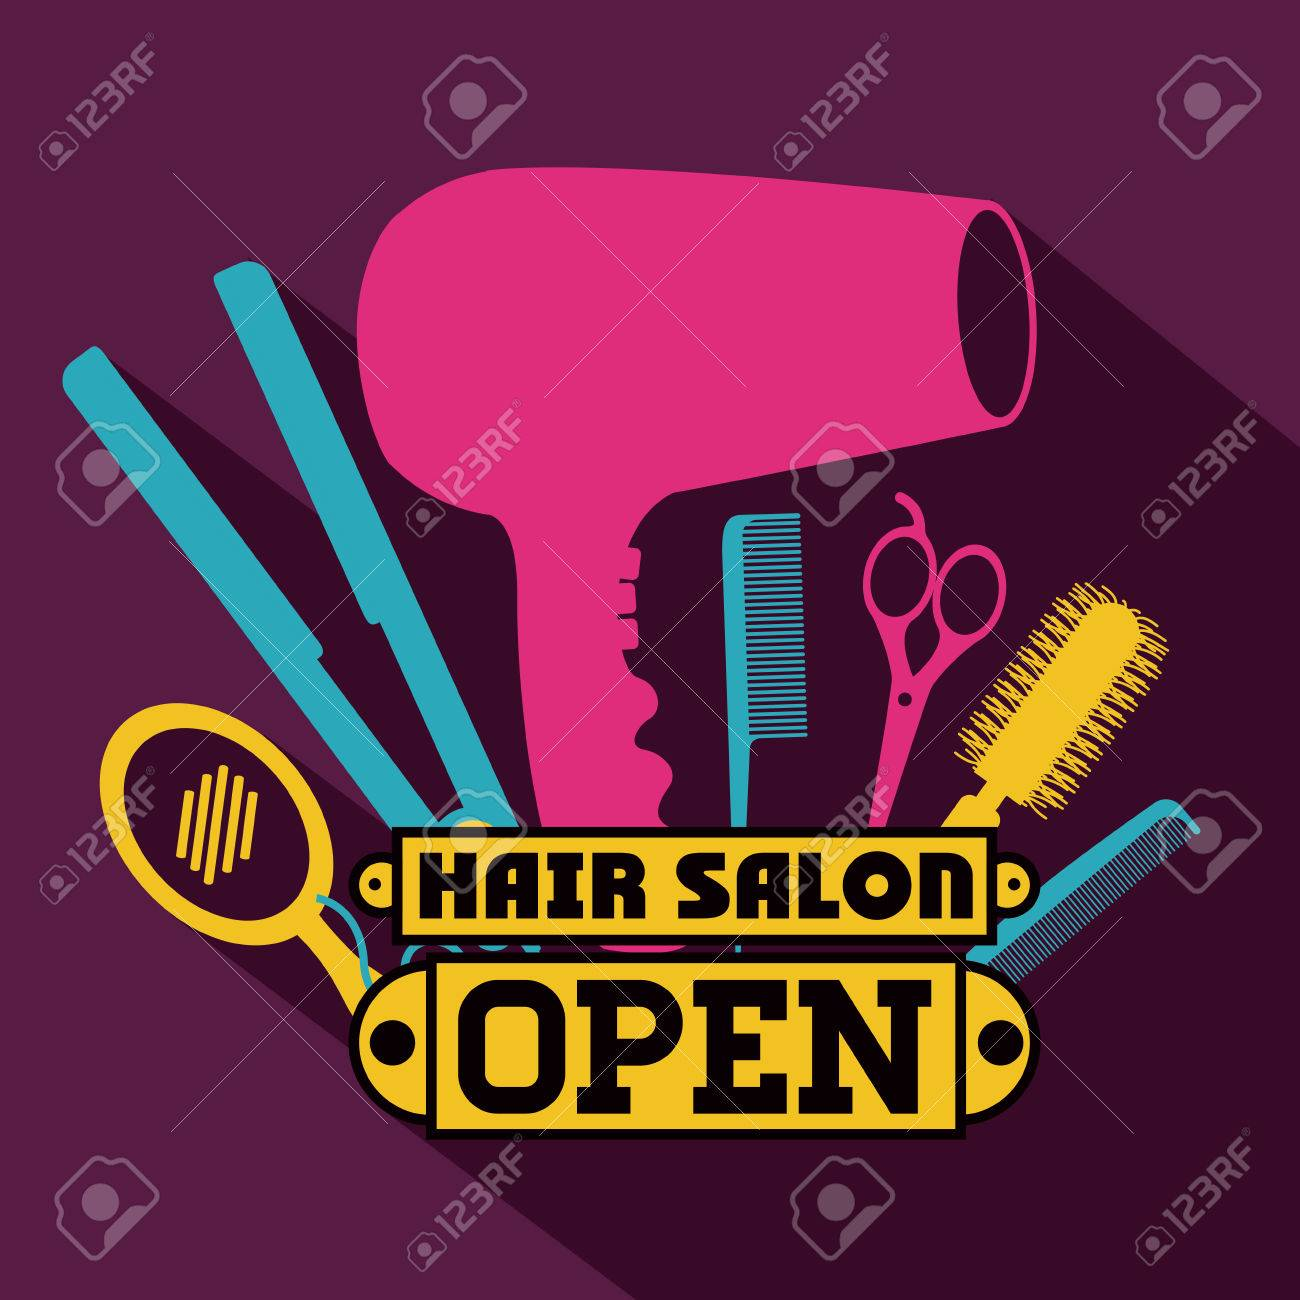 Hair salon chair isolated stock photos illustrations and vector art - Hairdressing Hair Salon Over Purple Background Vector Illustration